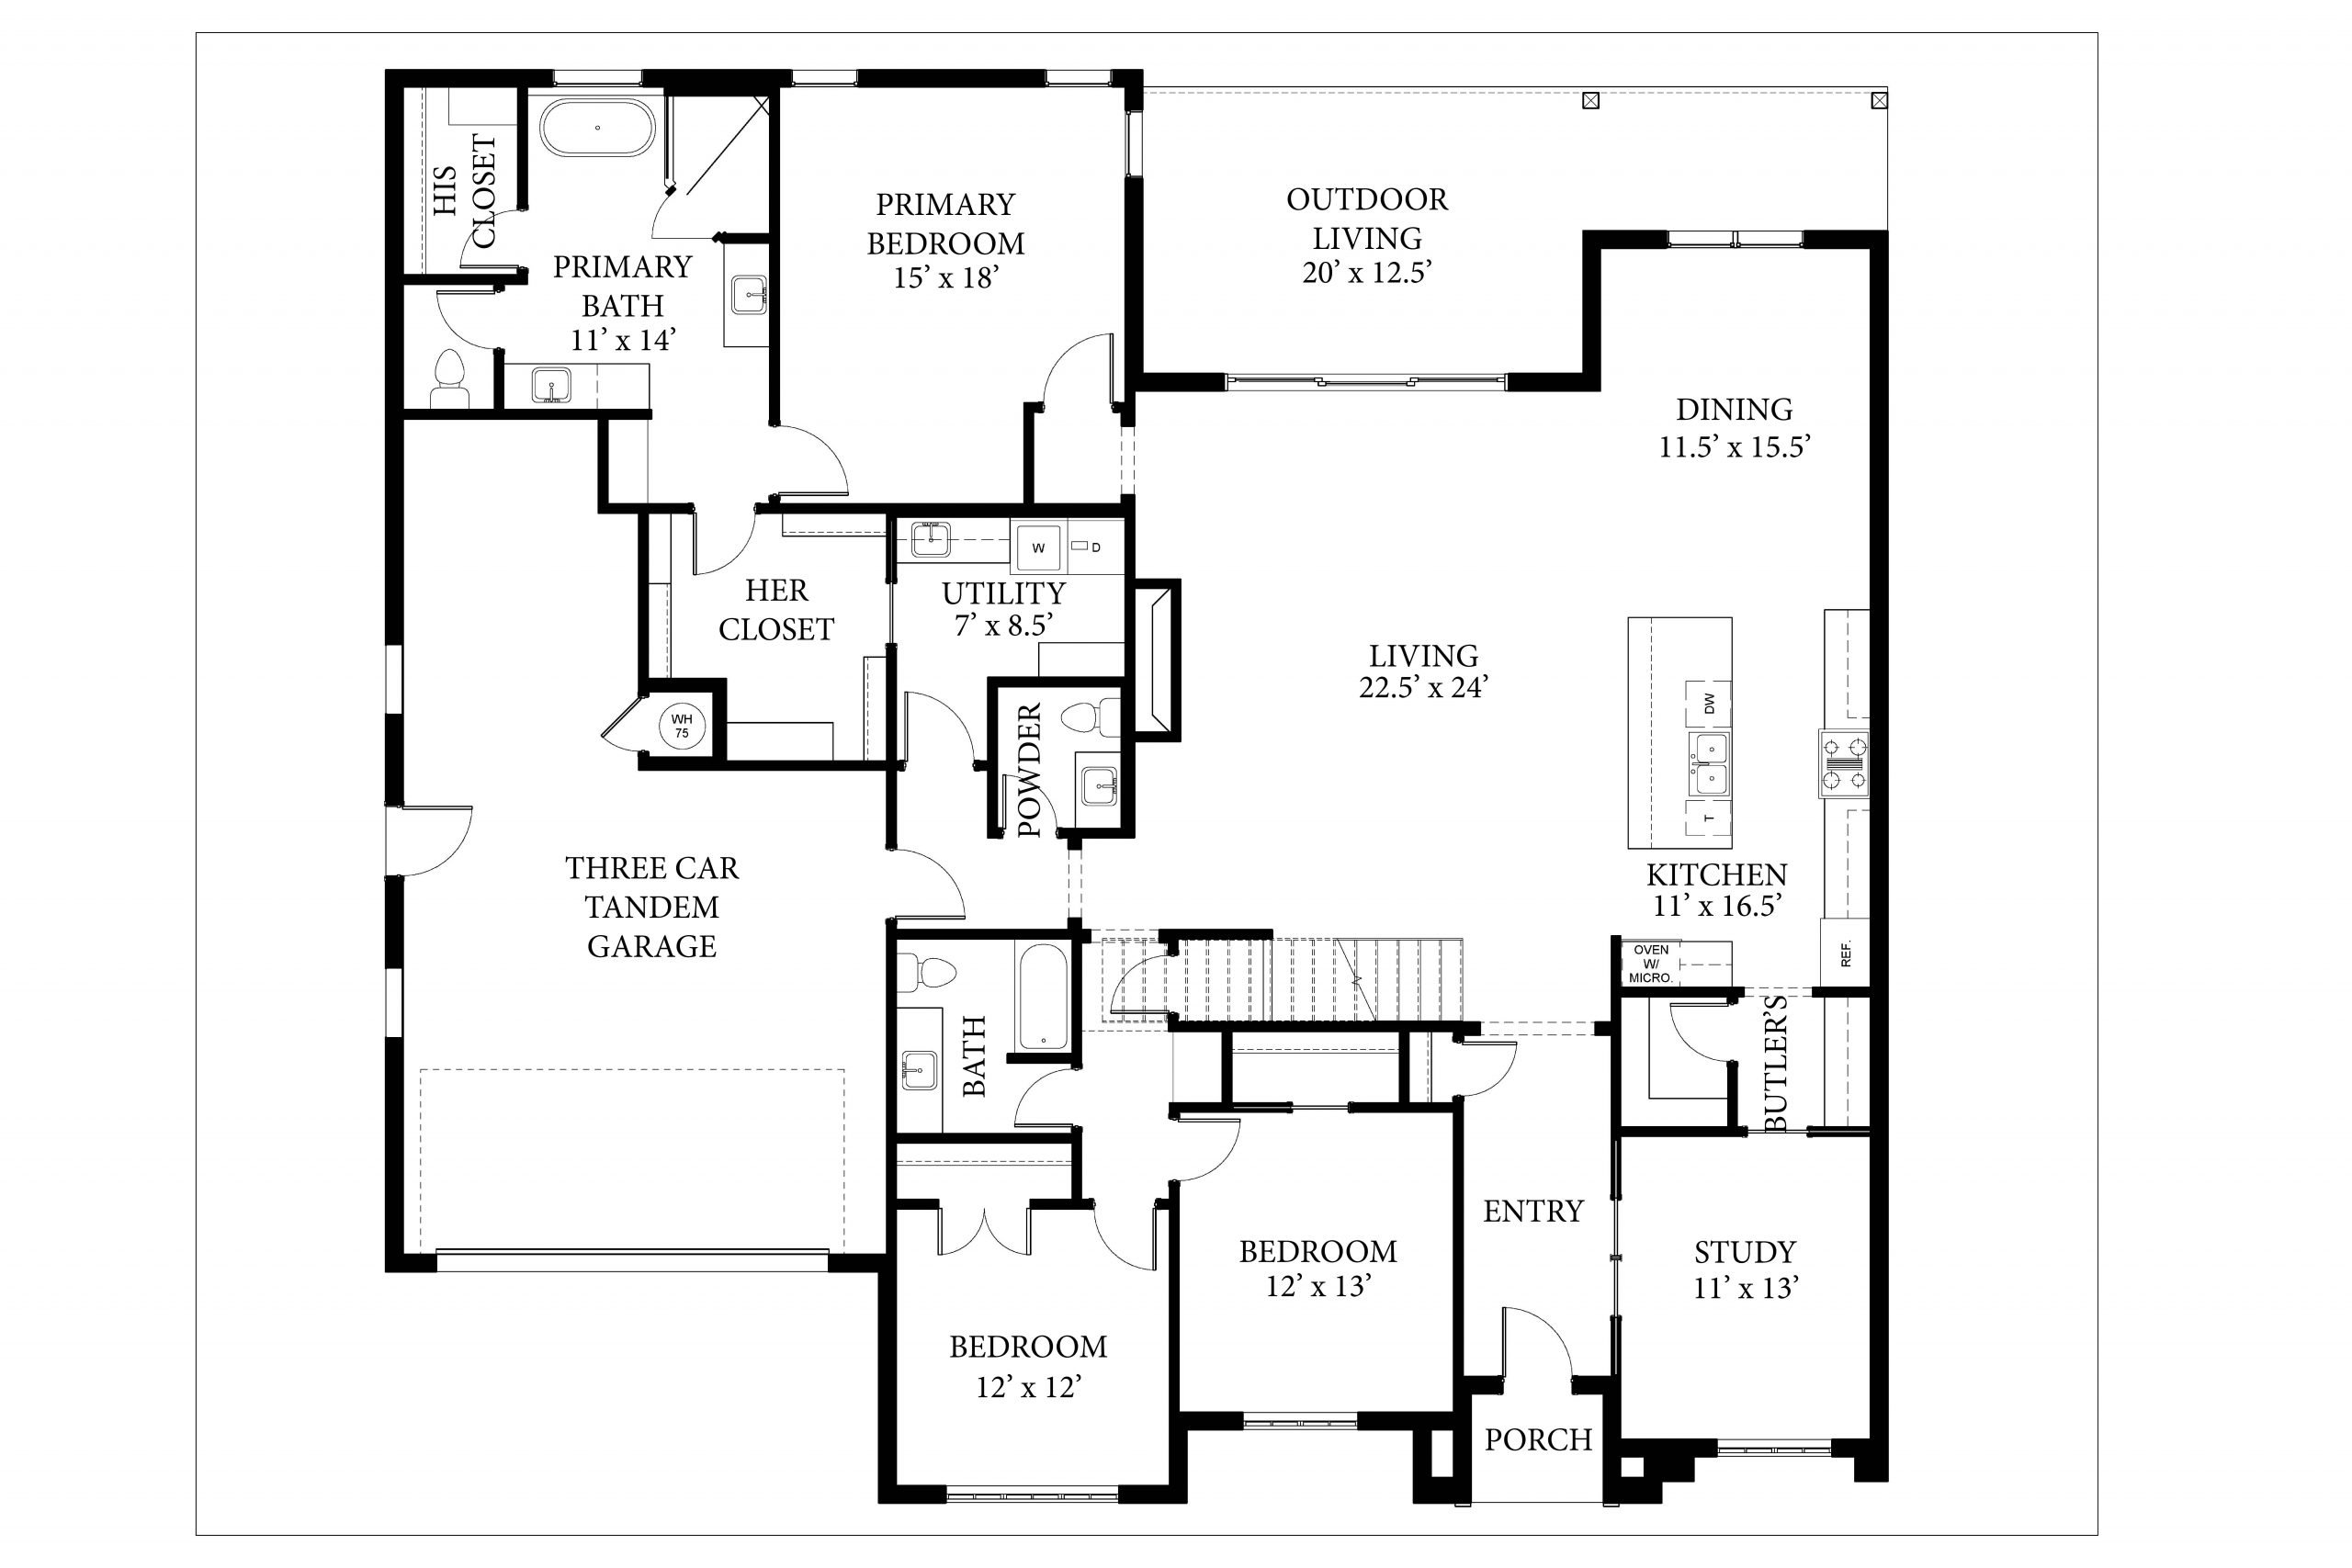 16408 Loire East - Dawson - Floor Plan